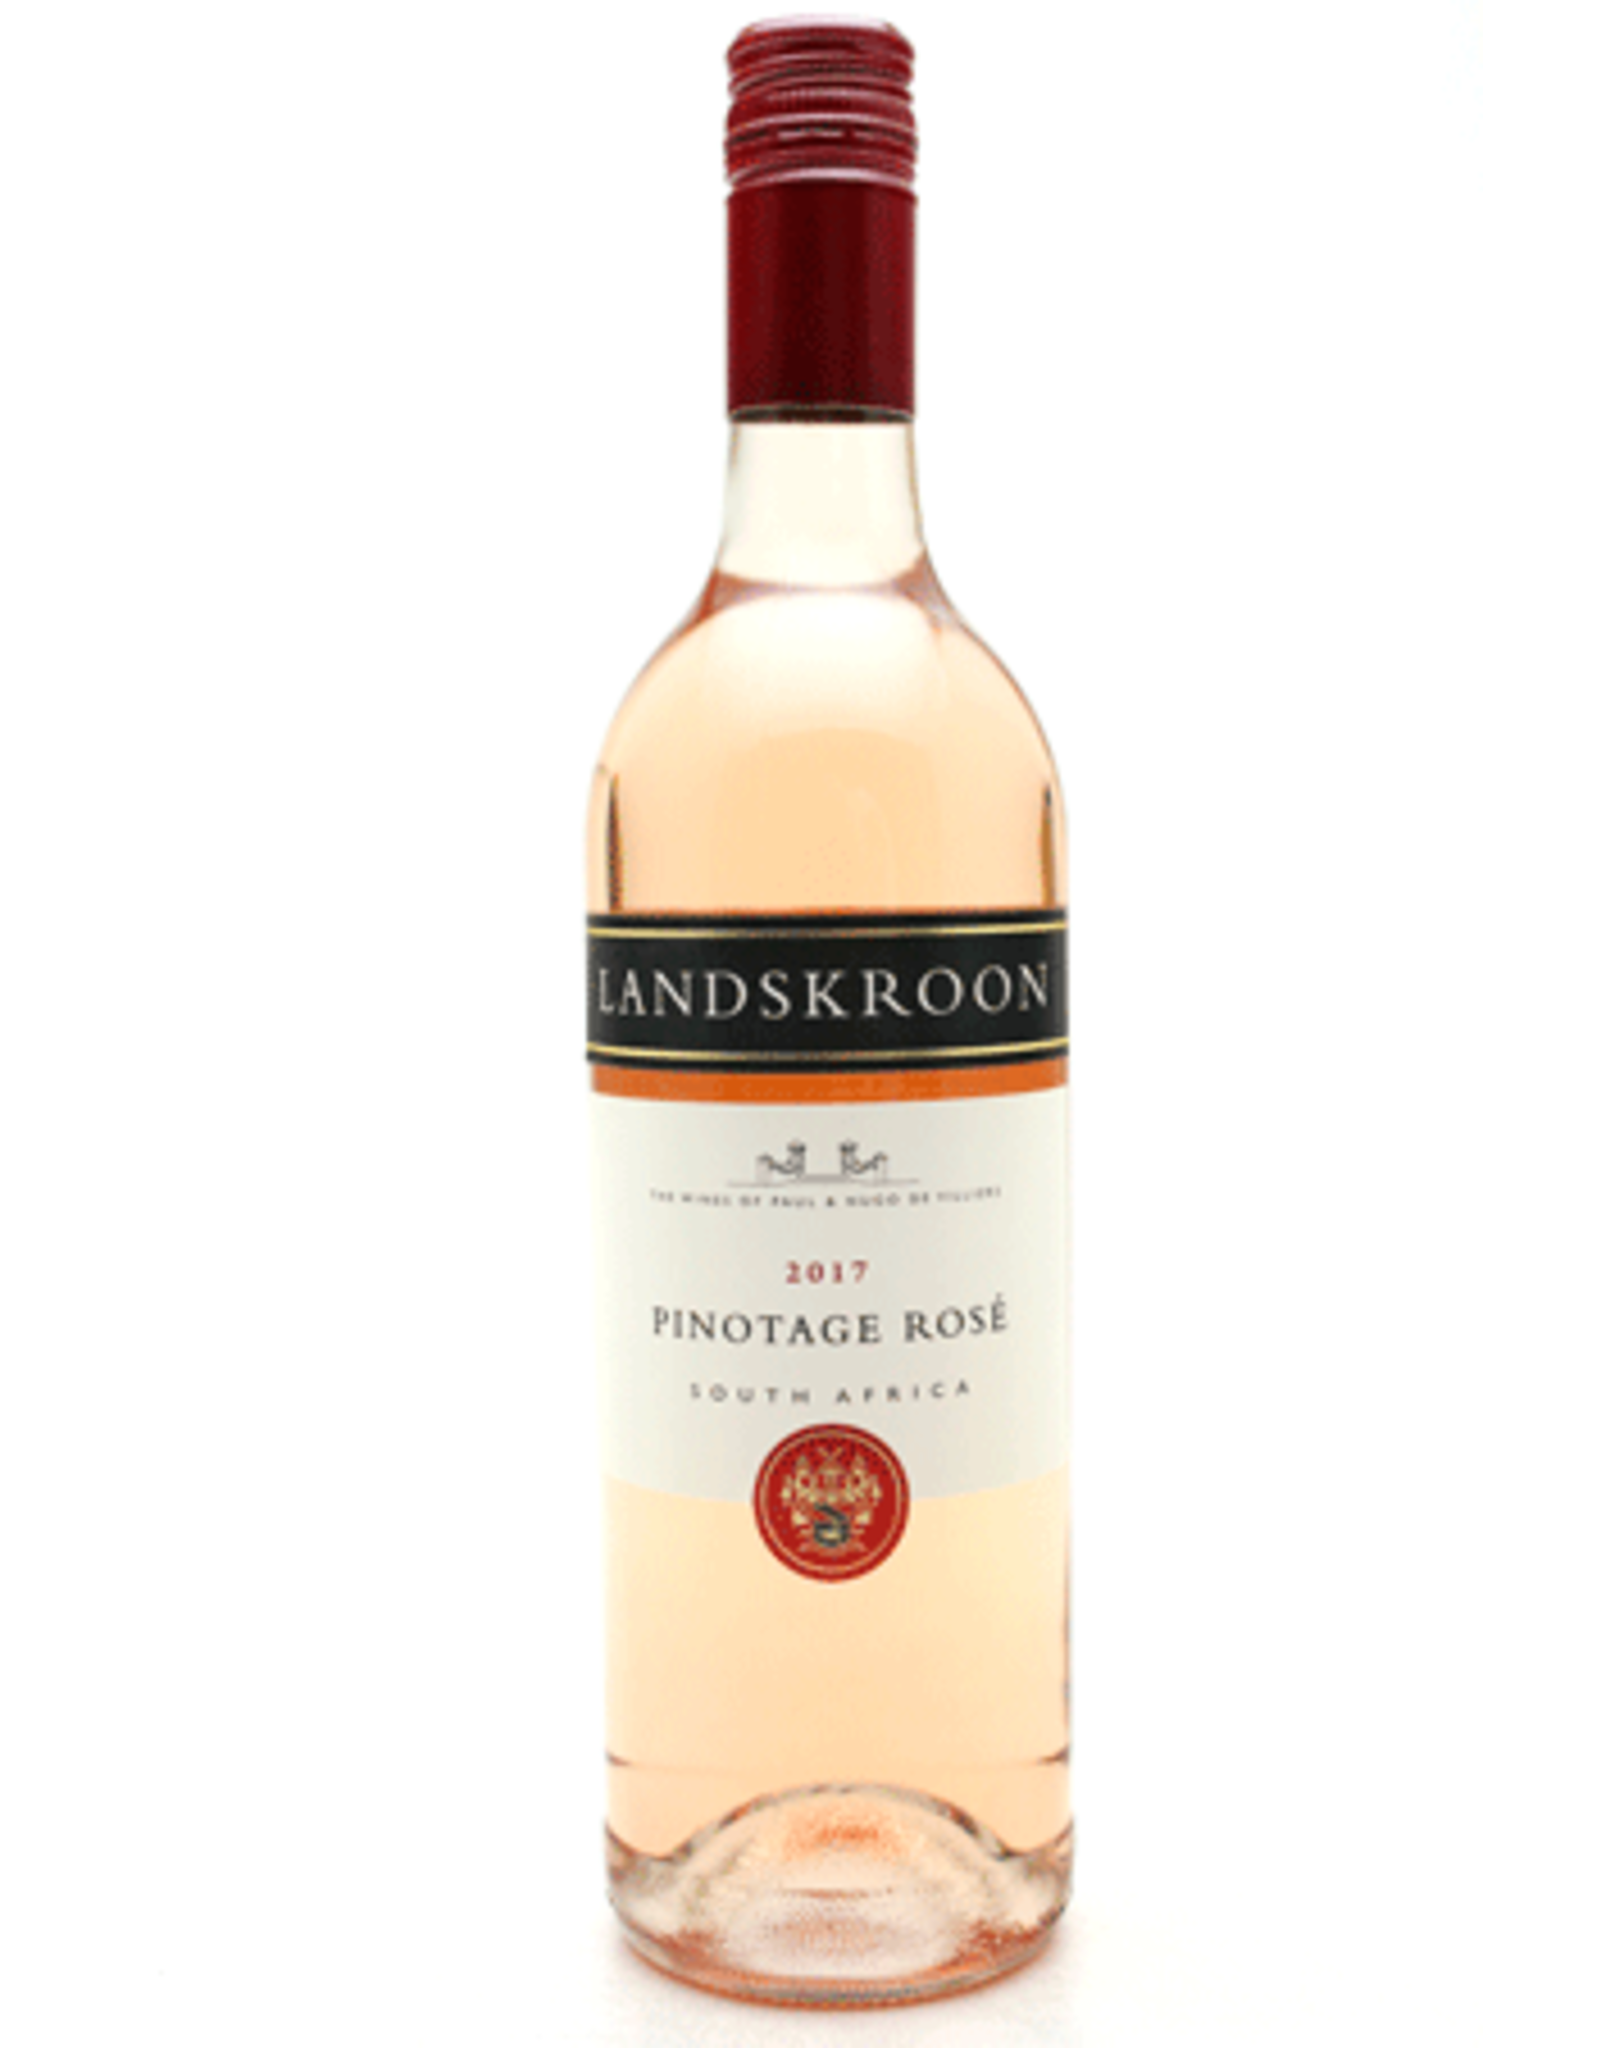 Rose Wine 2017, Landskroon, Rose of Pinotage, Paarl, South Africa, 12% Alc